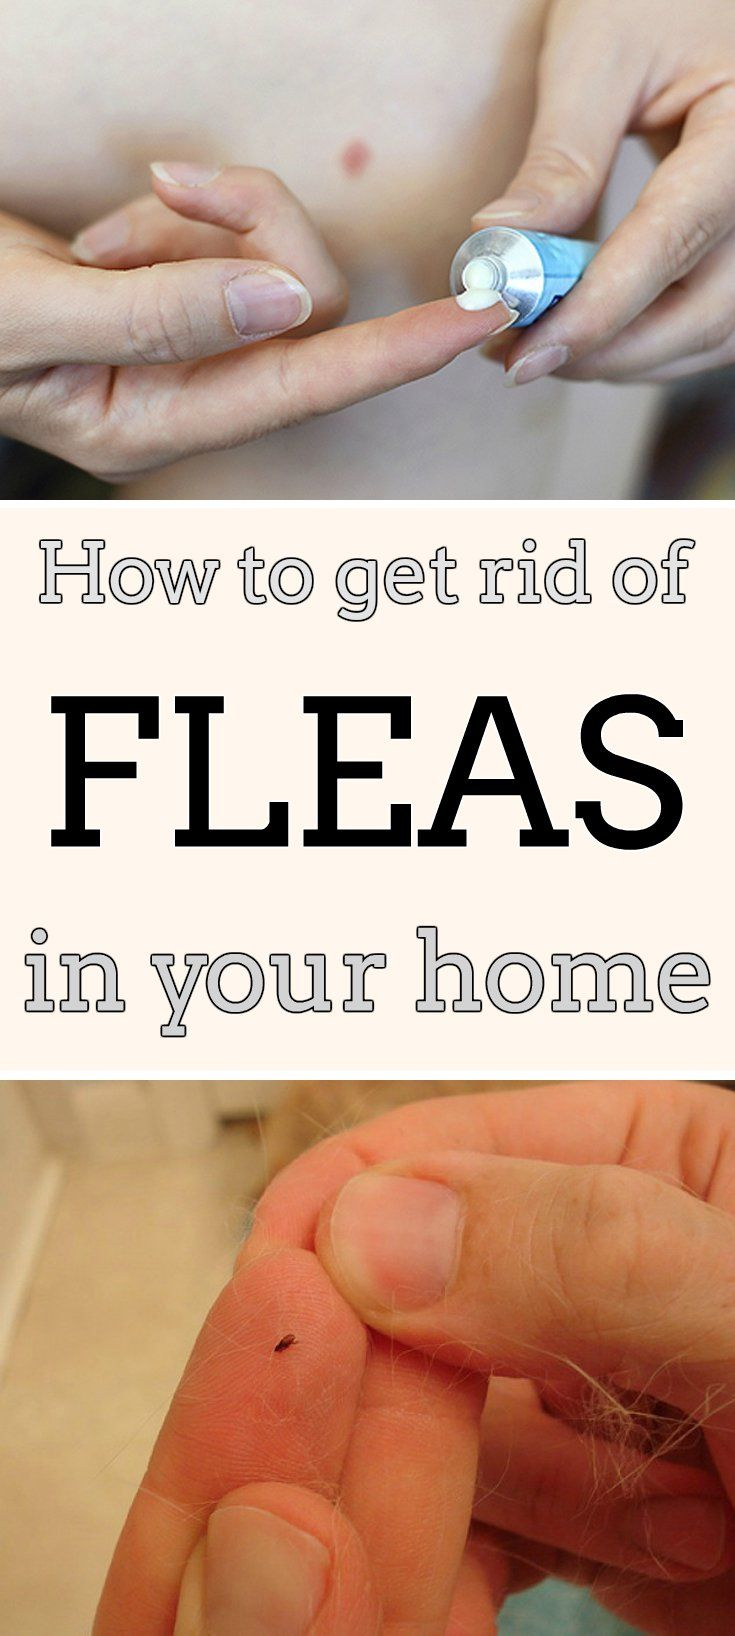 89 best get rid of insects fleas images on pinterest home how to get rid of fleas in your home mycleaningsolutions ccuart Image collections